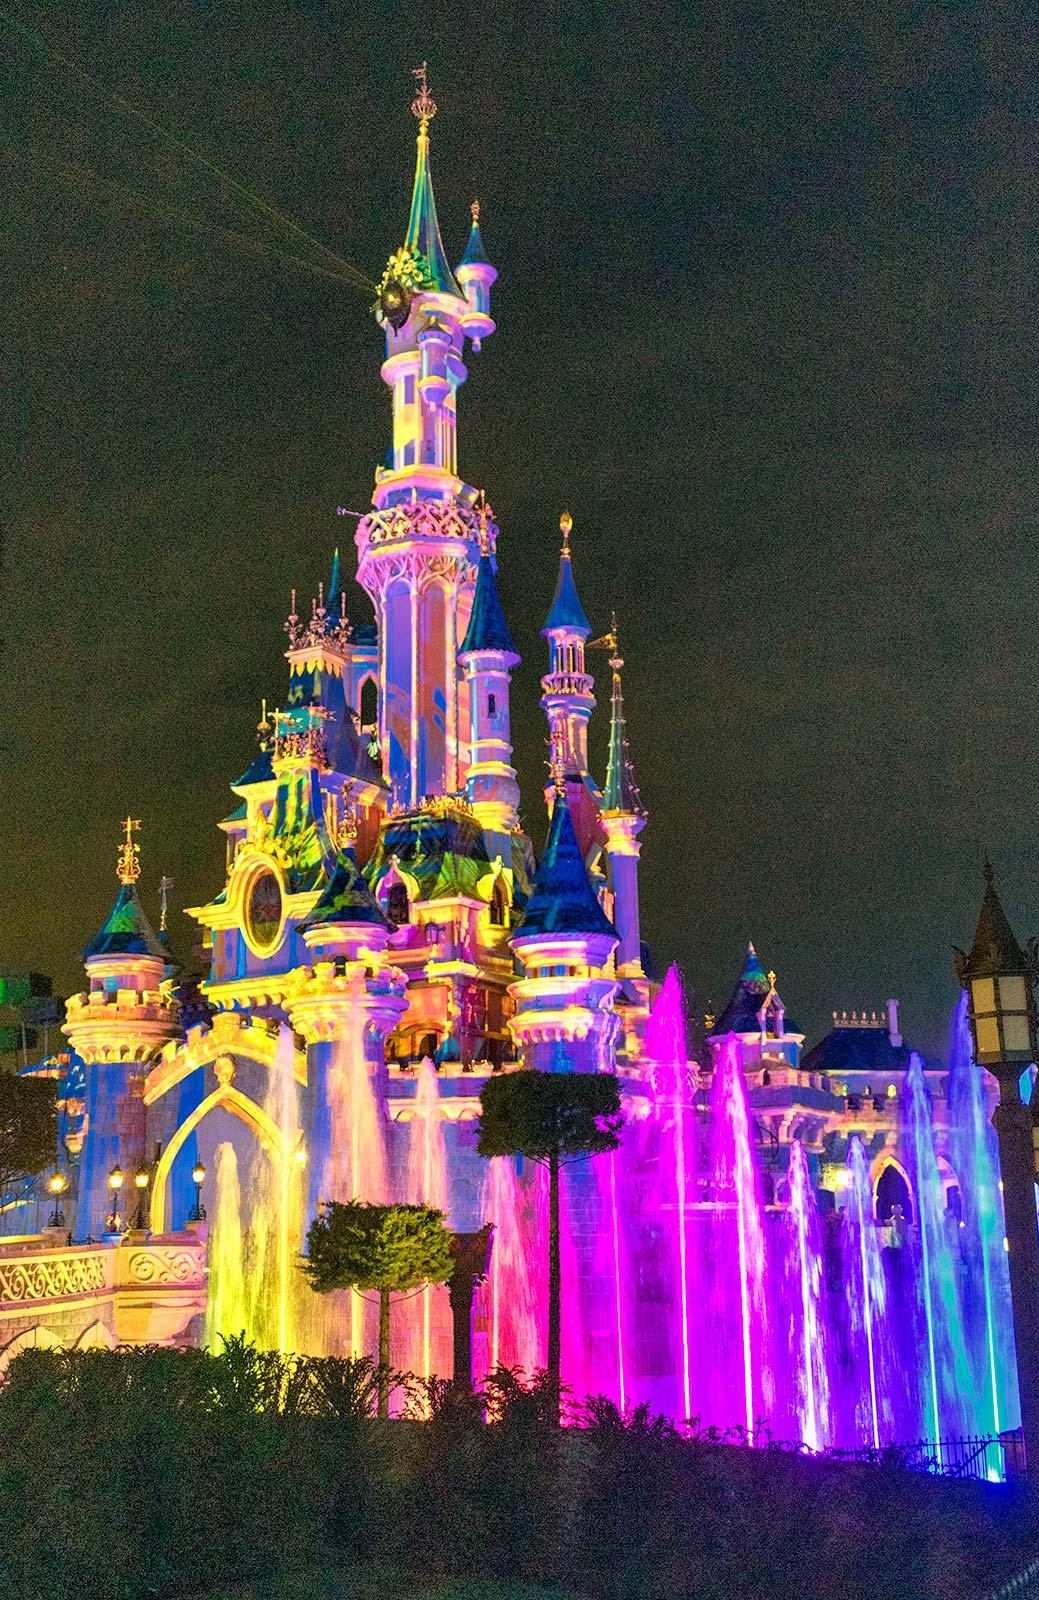 Disney Illumination